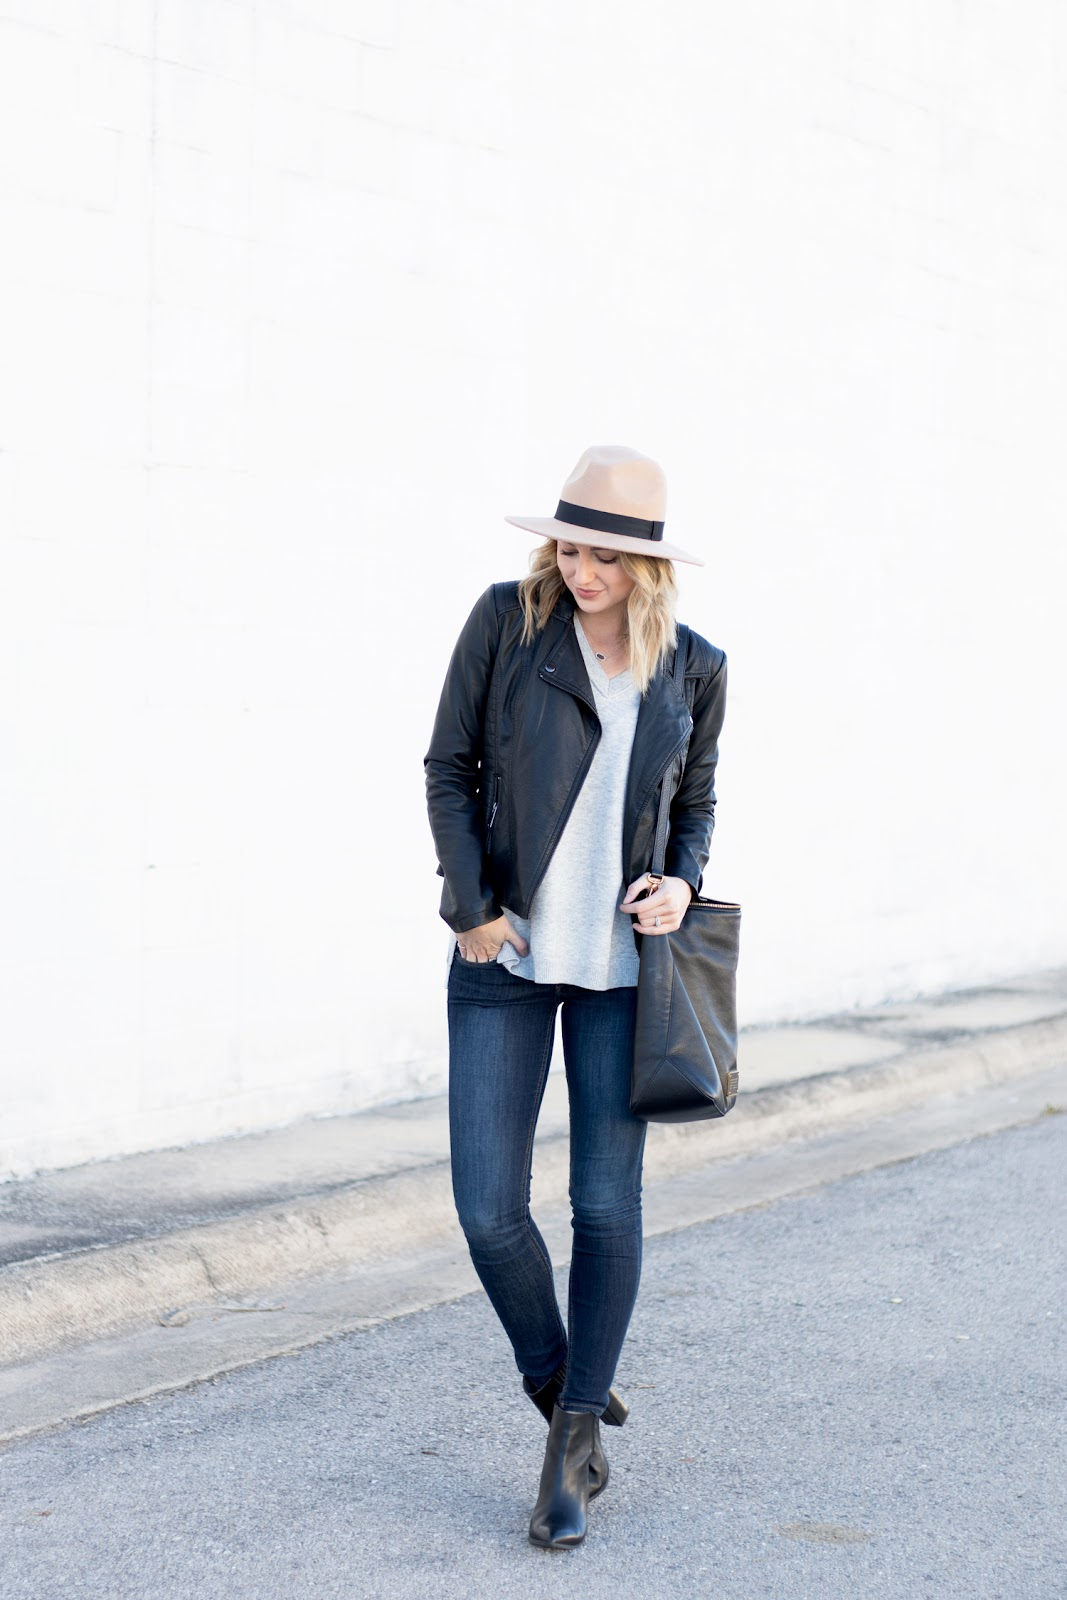 Neutral fall/winter outfit